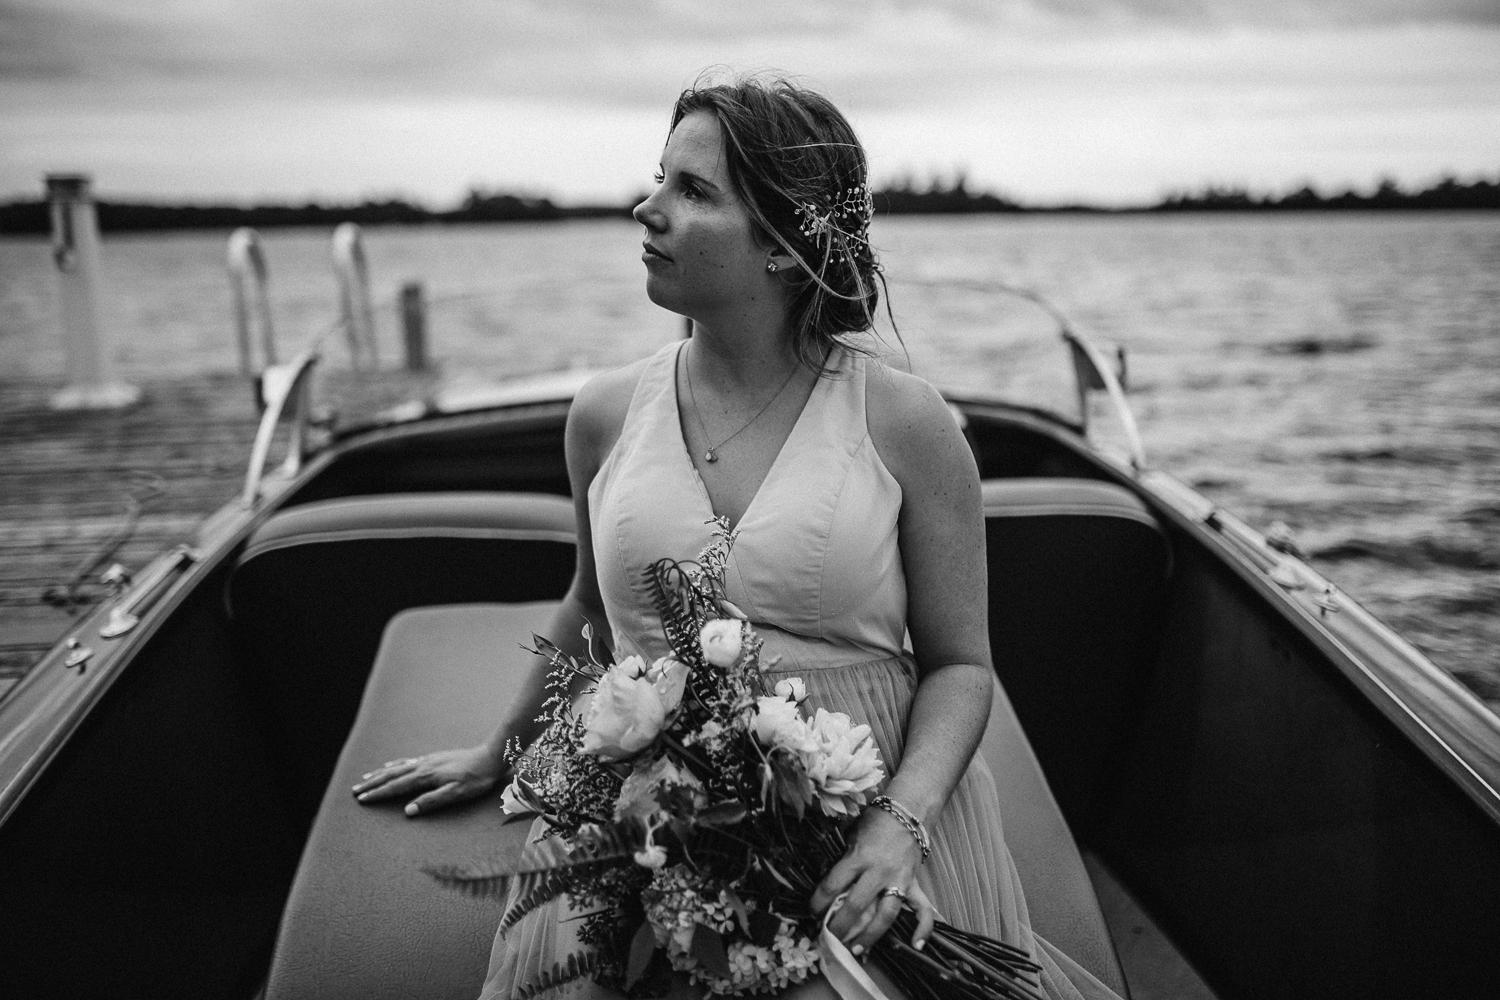 kerry ford photography - small intimate backyard rideau lake island wedding perth ontario-113.jpg